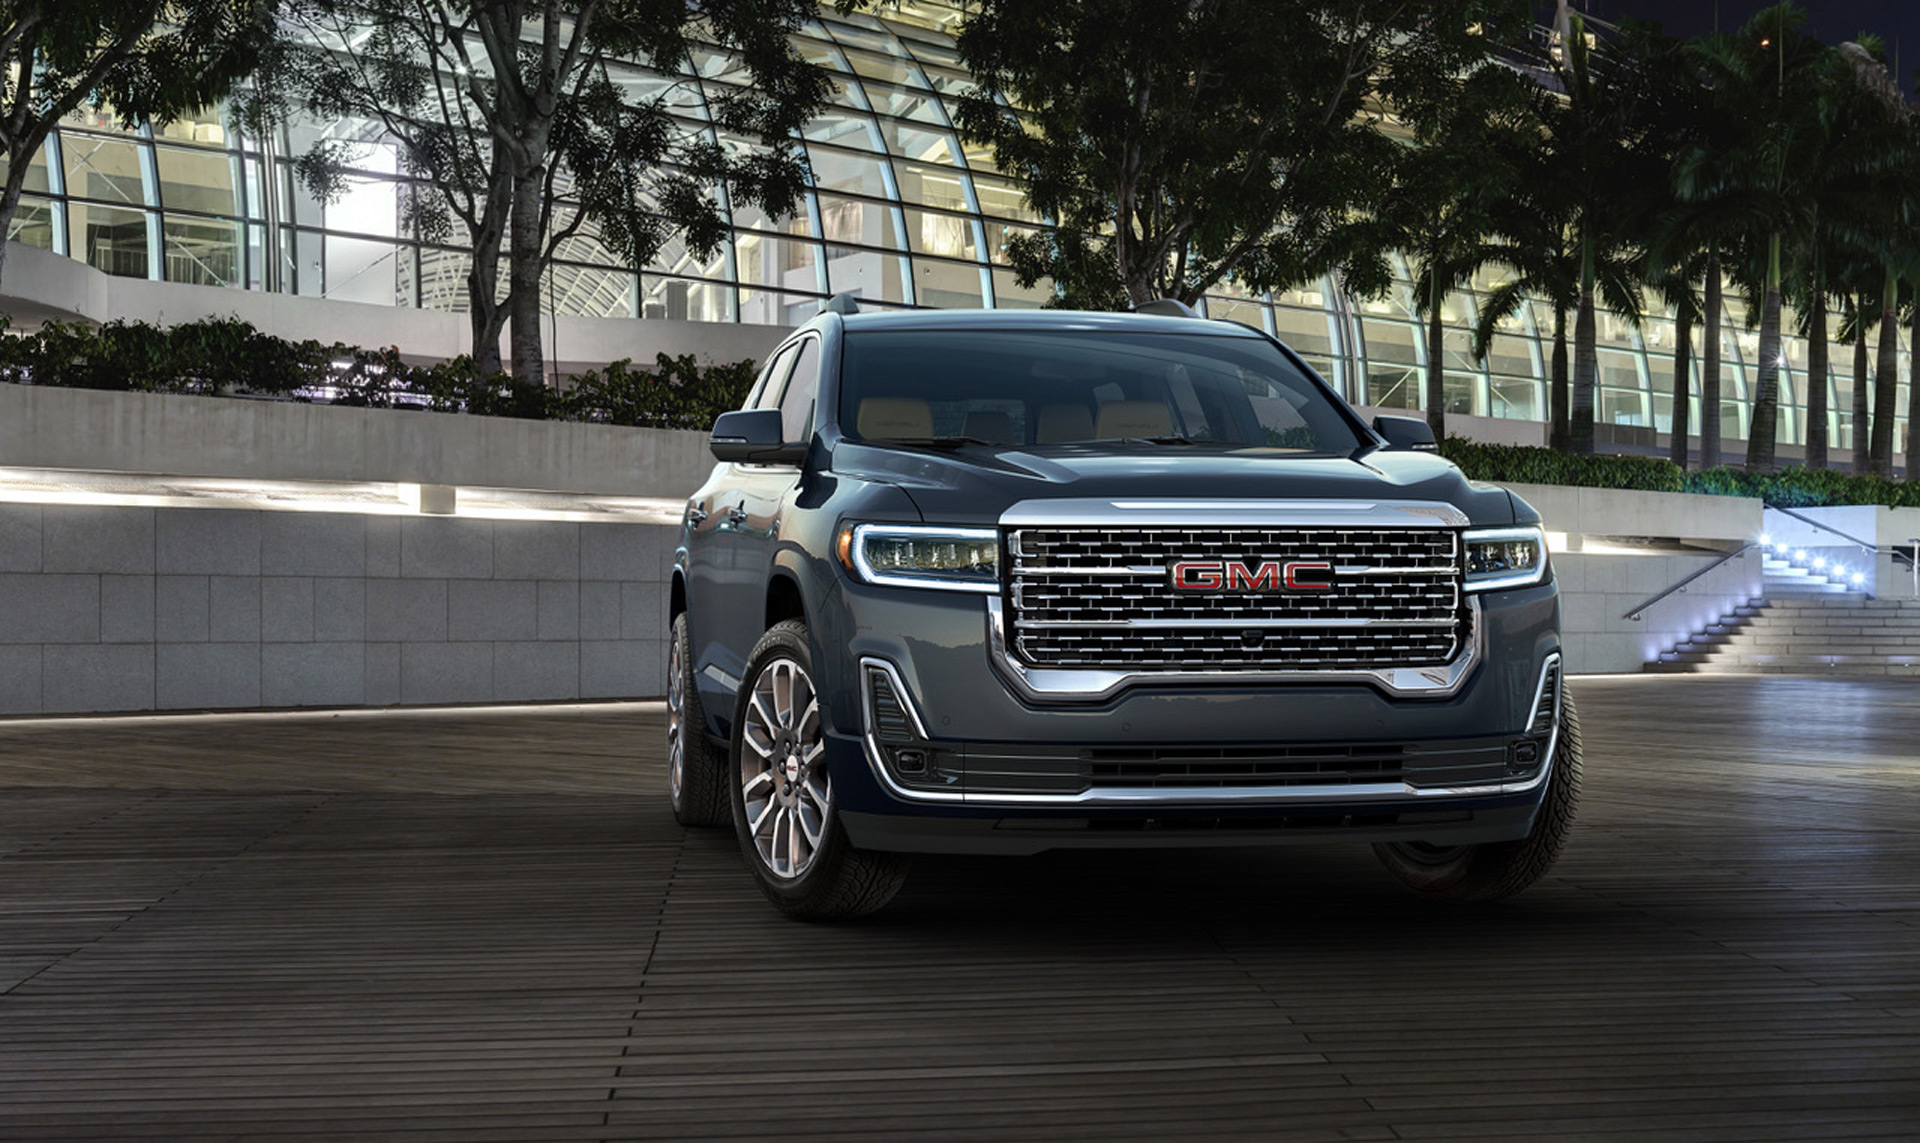 2020 Gmc Acadia Review.2020 Gmc Acadia Review Ratings Specs Prices And Photos